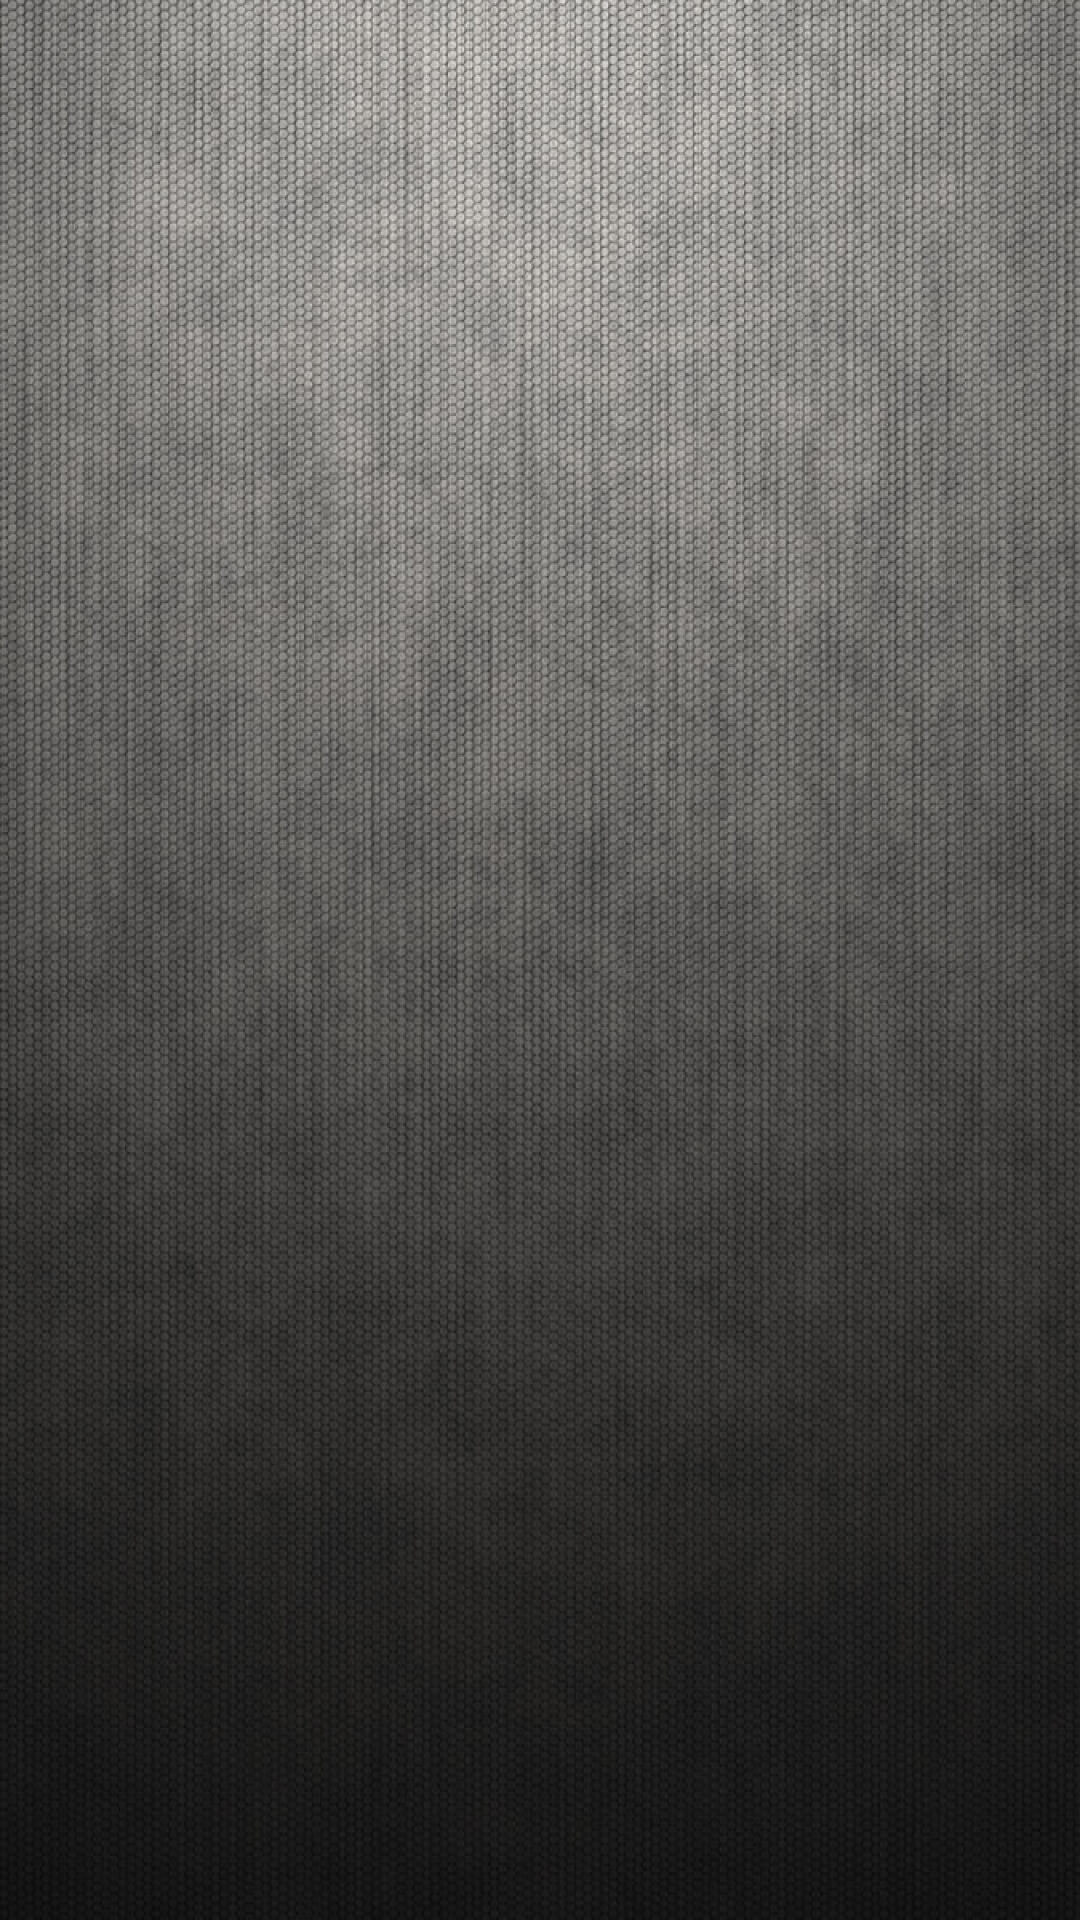 Grey Android Wallpaper